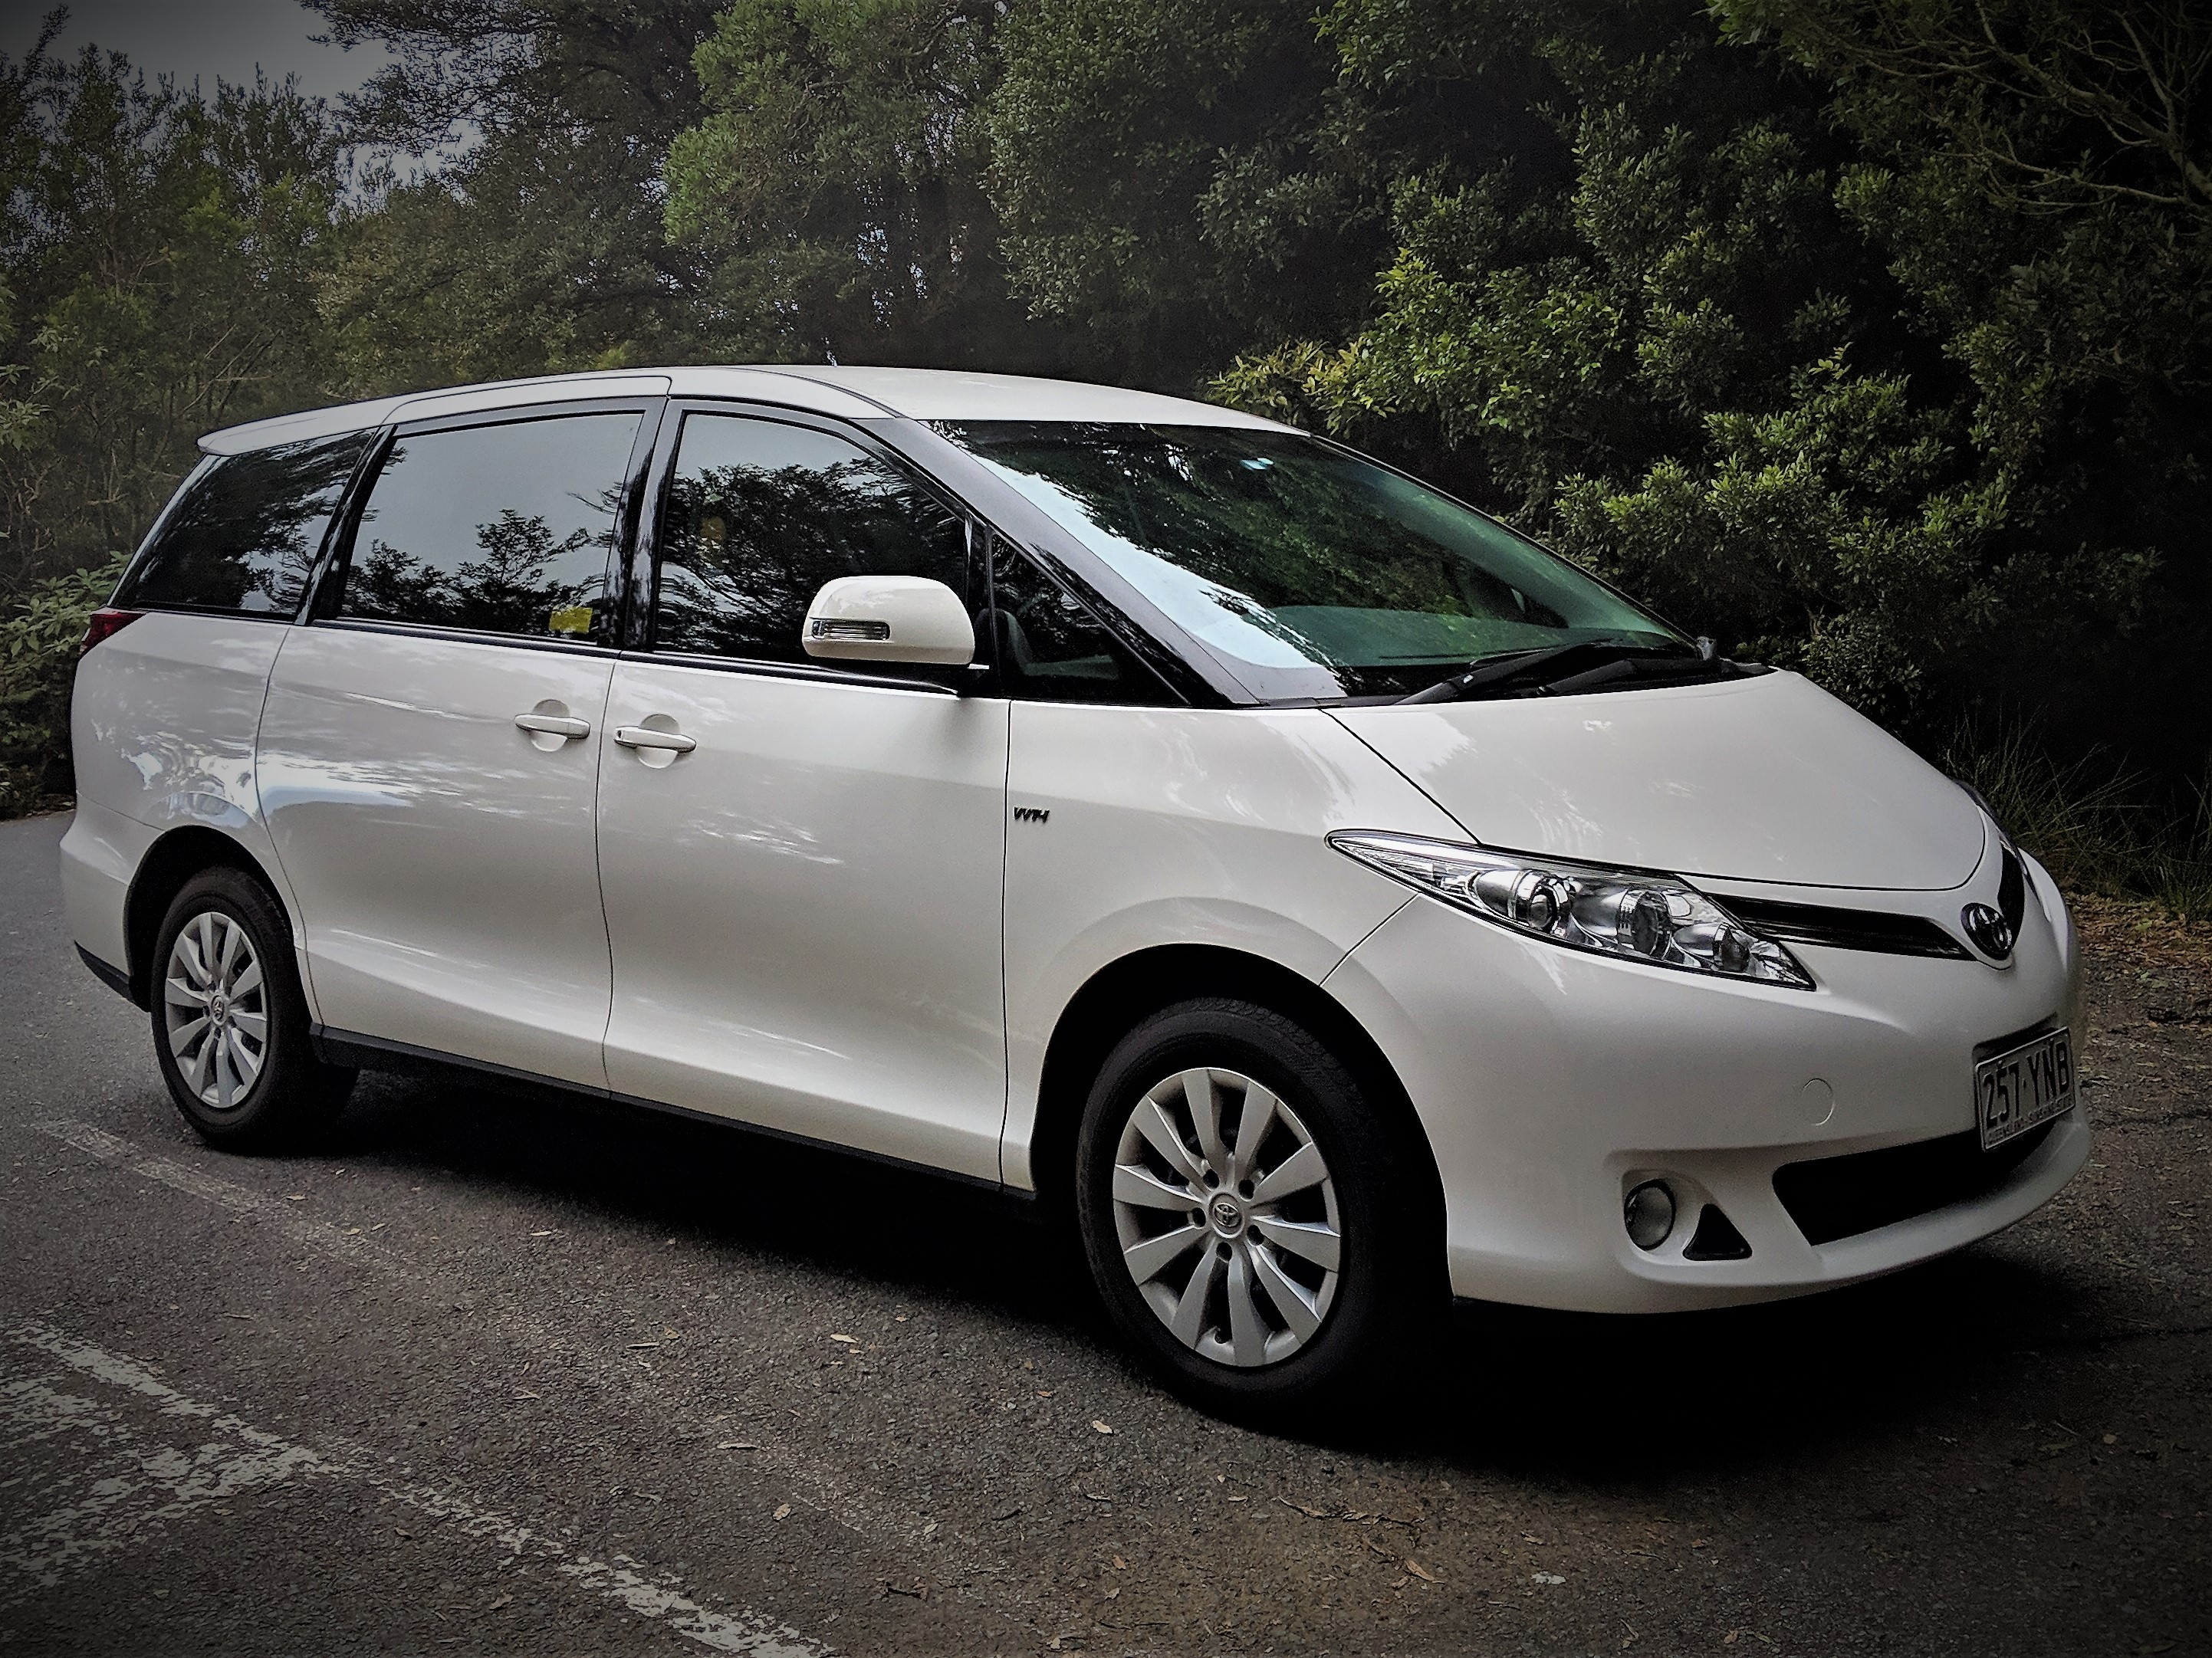 Picture of Jesani's 2014 Toyota Tarago